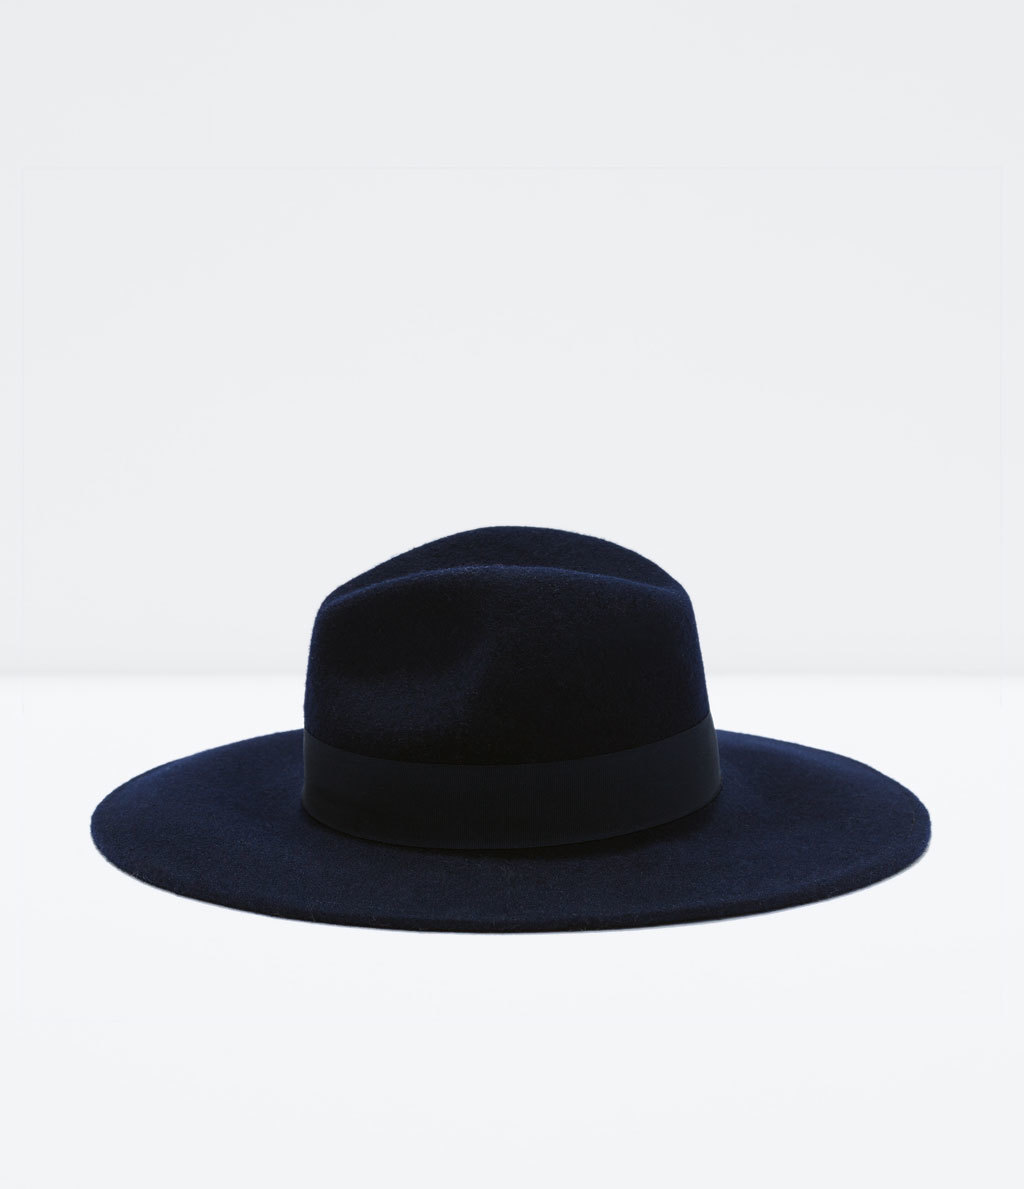 Wide Brim Felt Hat - predominant colour: black; occasions: casual; style: wide brimmed; size: standard; material: fabric; pattern: plain; season: a/w 2014